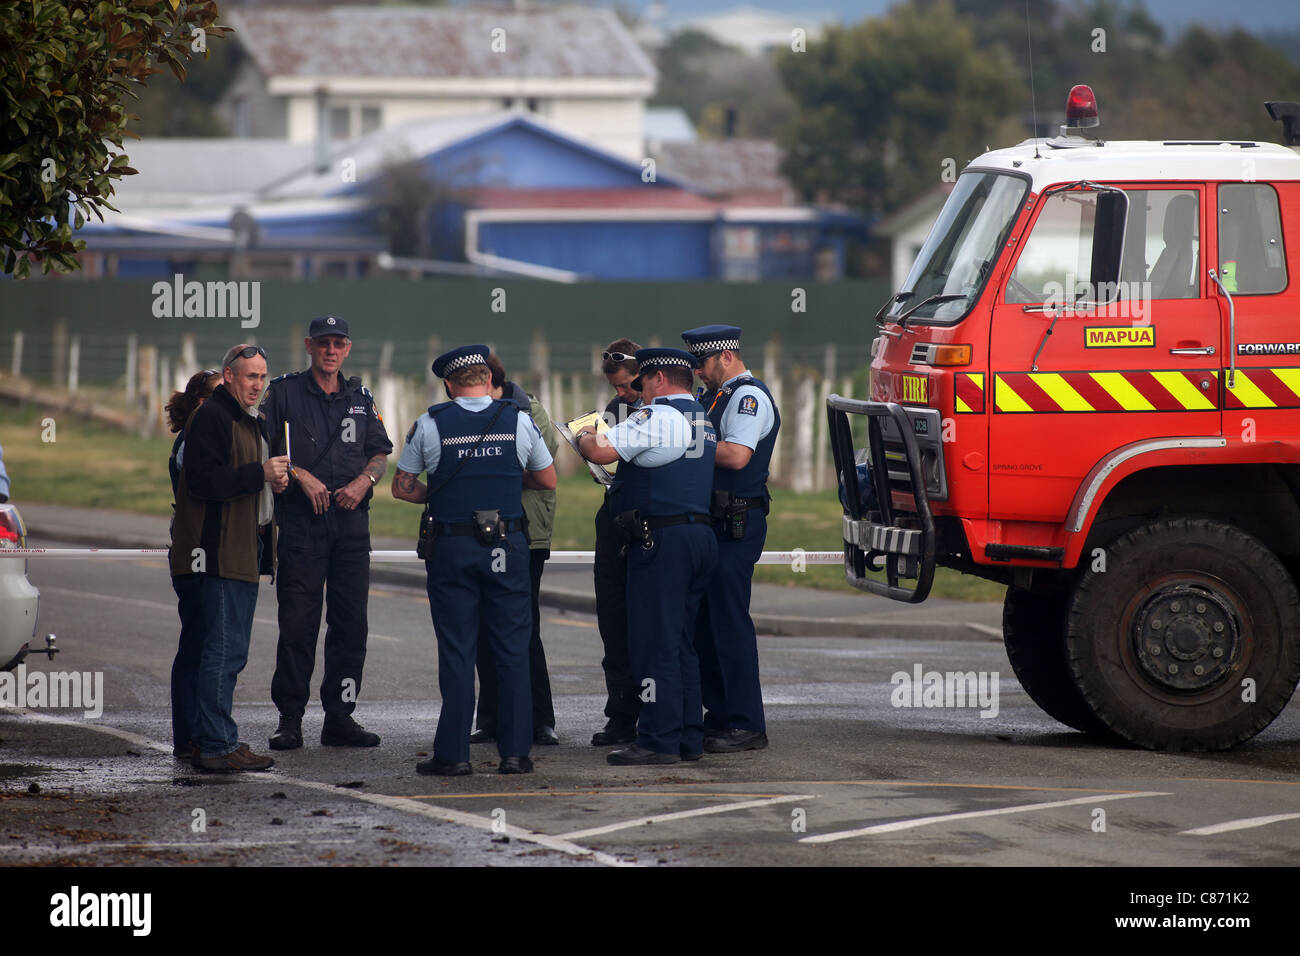 Fire and Police personnel on the scene of a suspicious fire at Mapua's Touch the Sea aquarium, Nelson, New Zealand - Stock Image